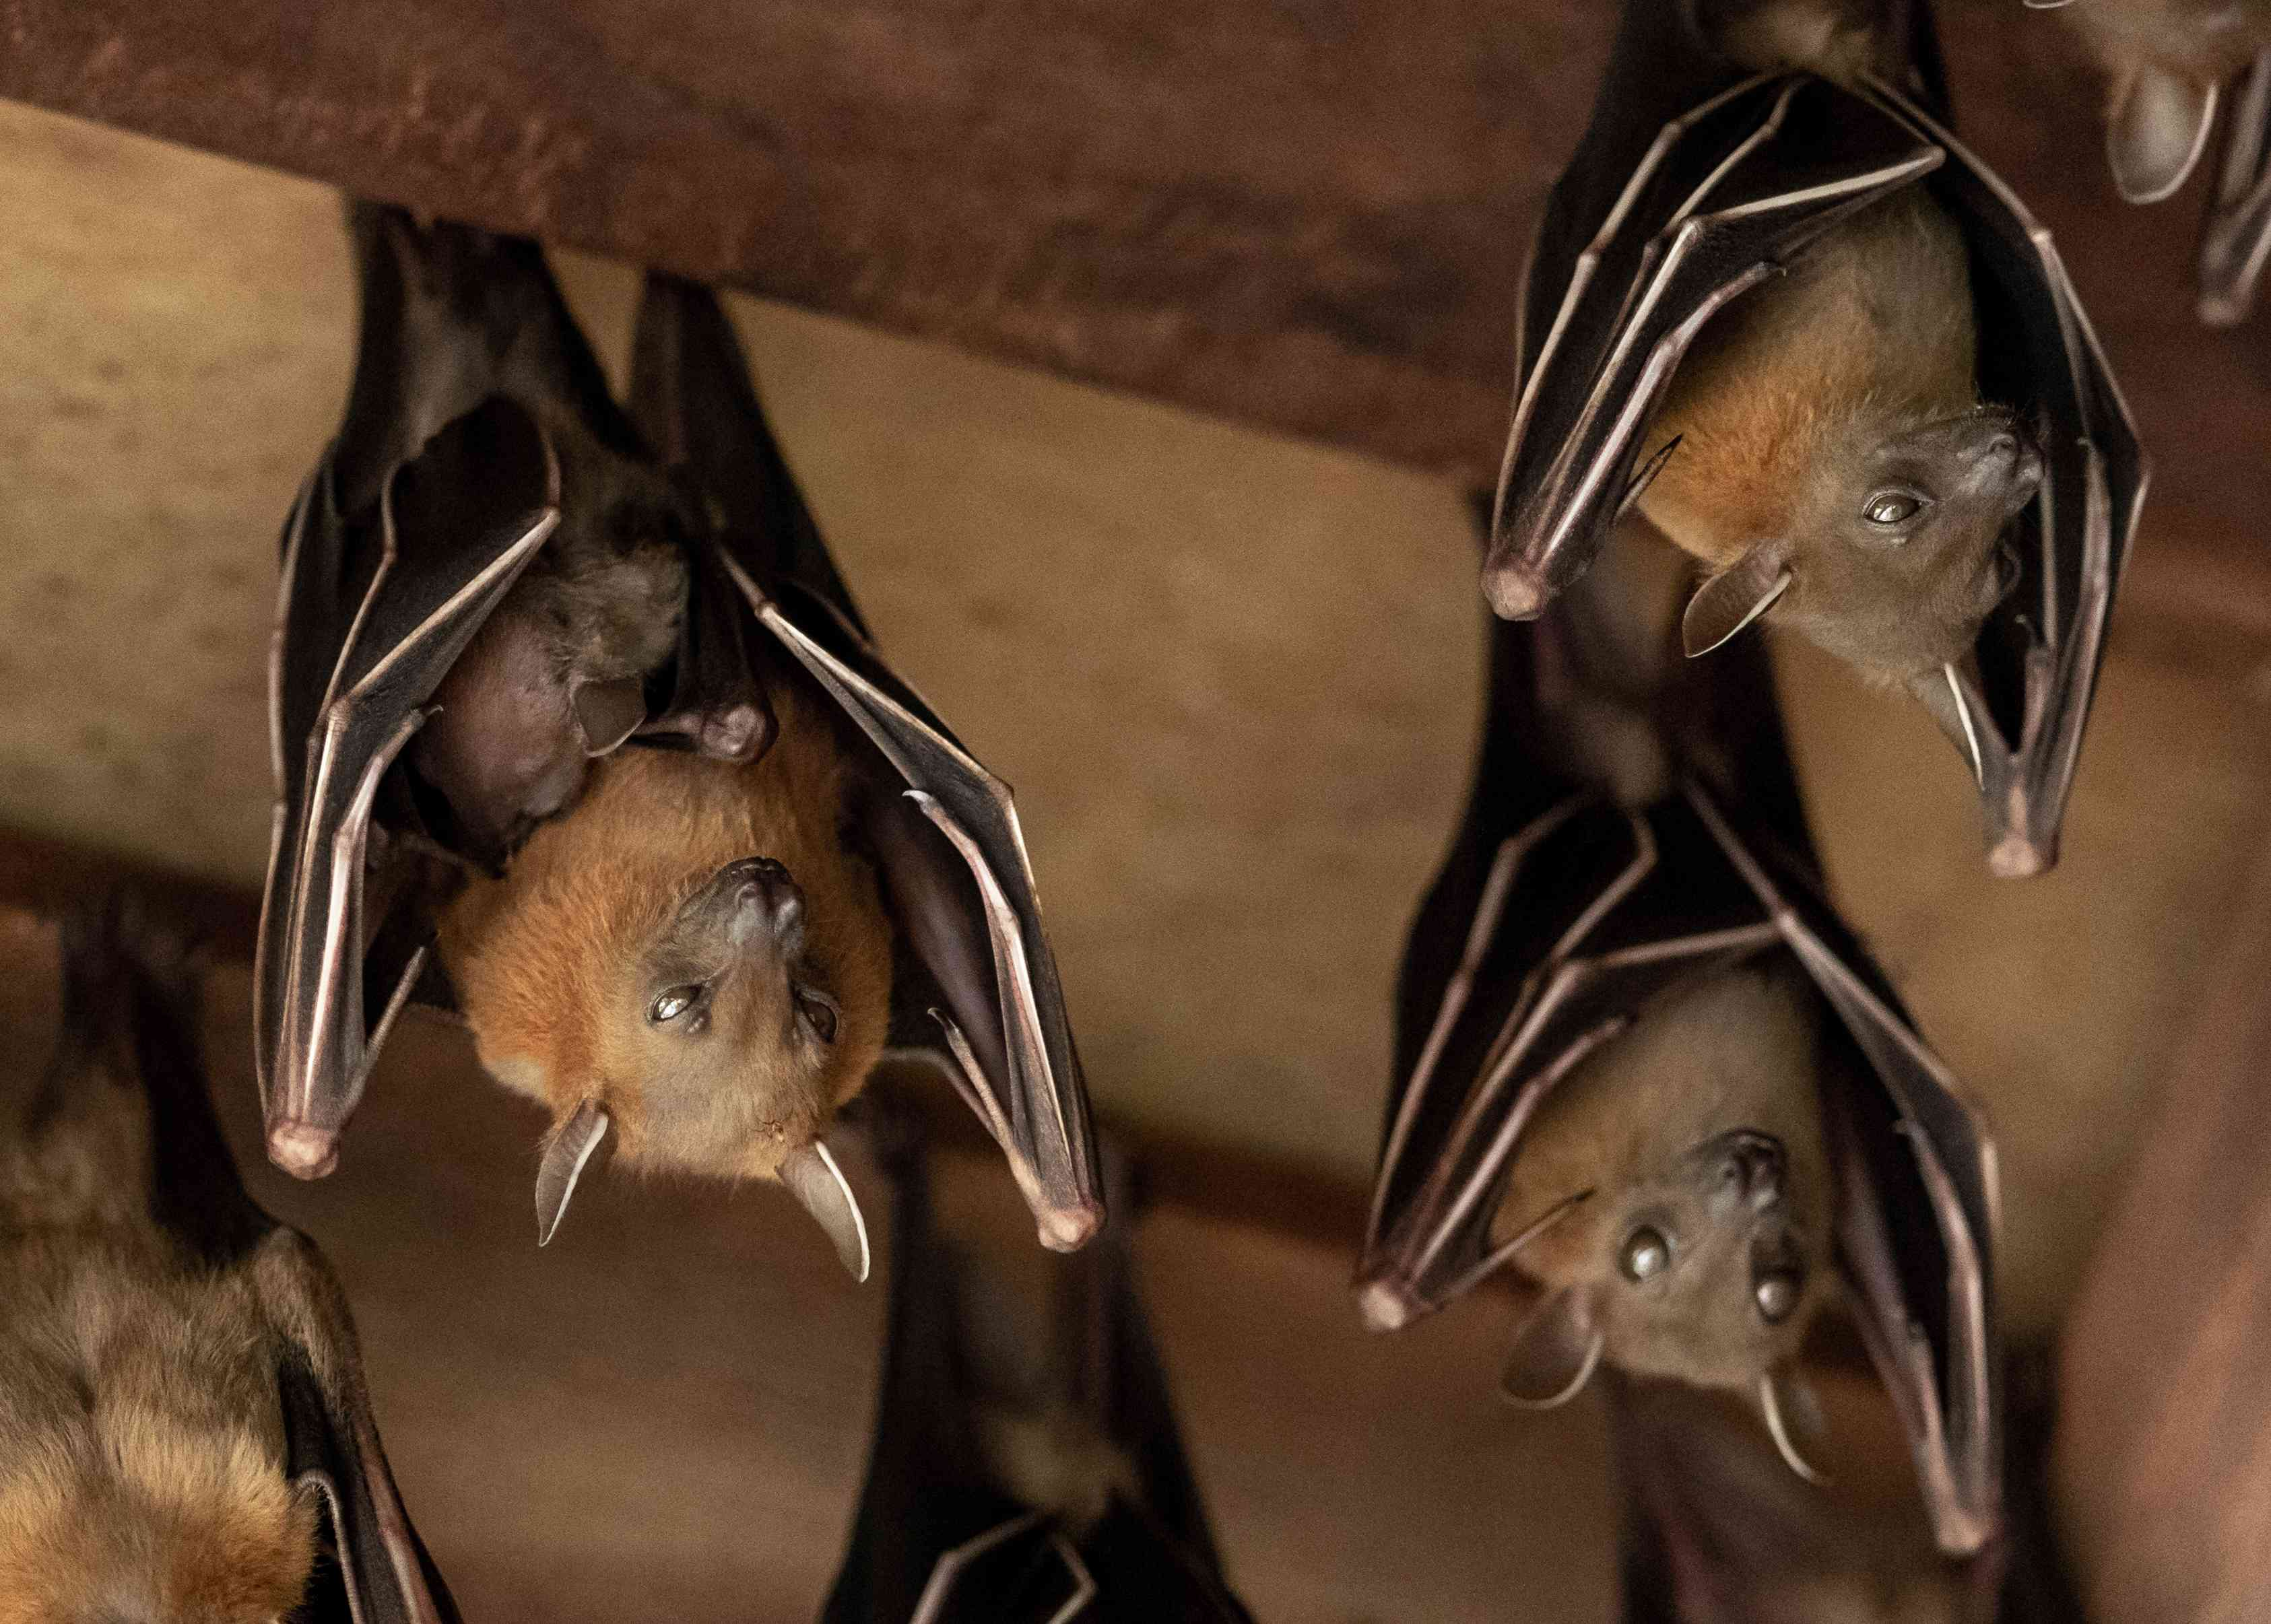 Large brown bats hang from the rafters in a wooden building